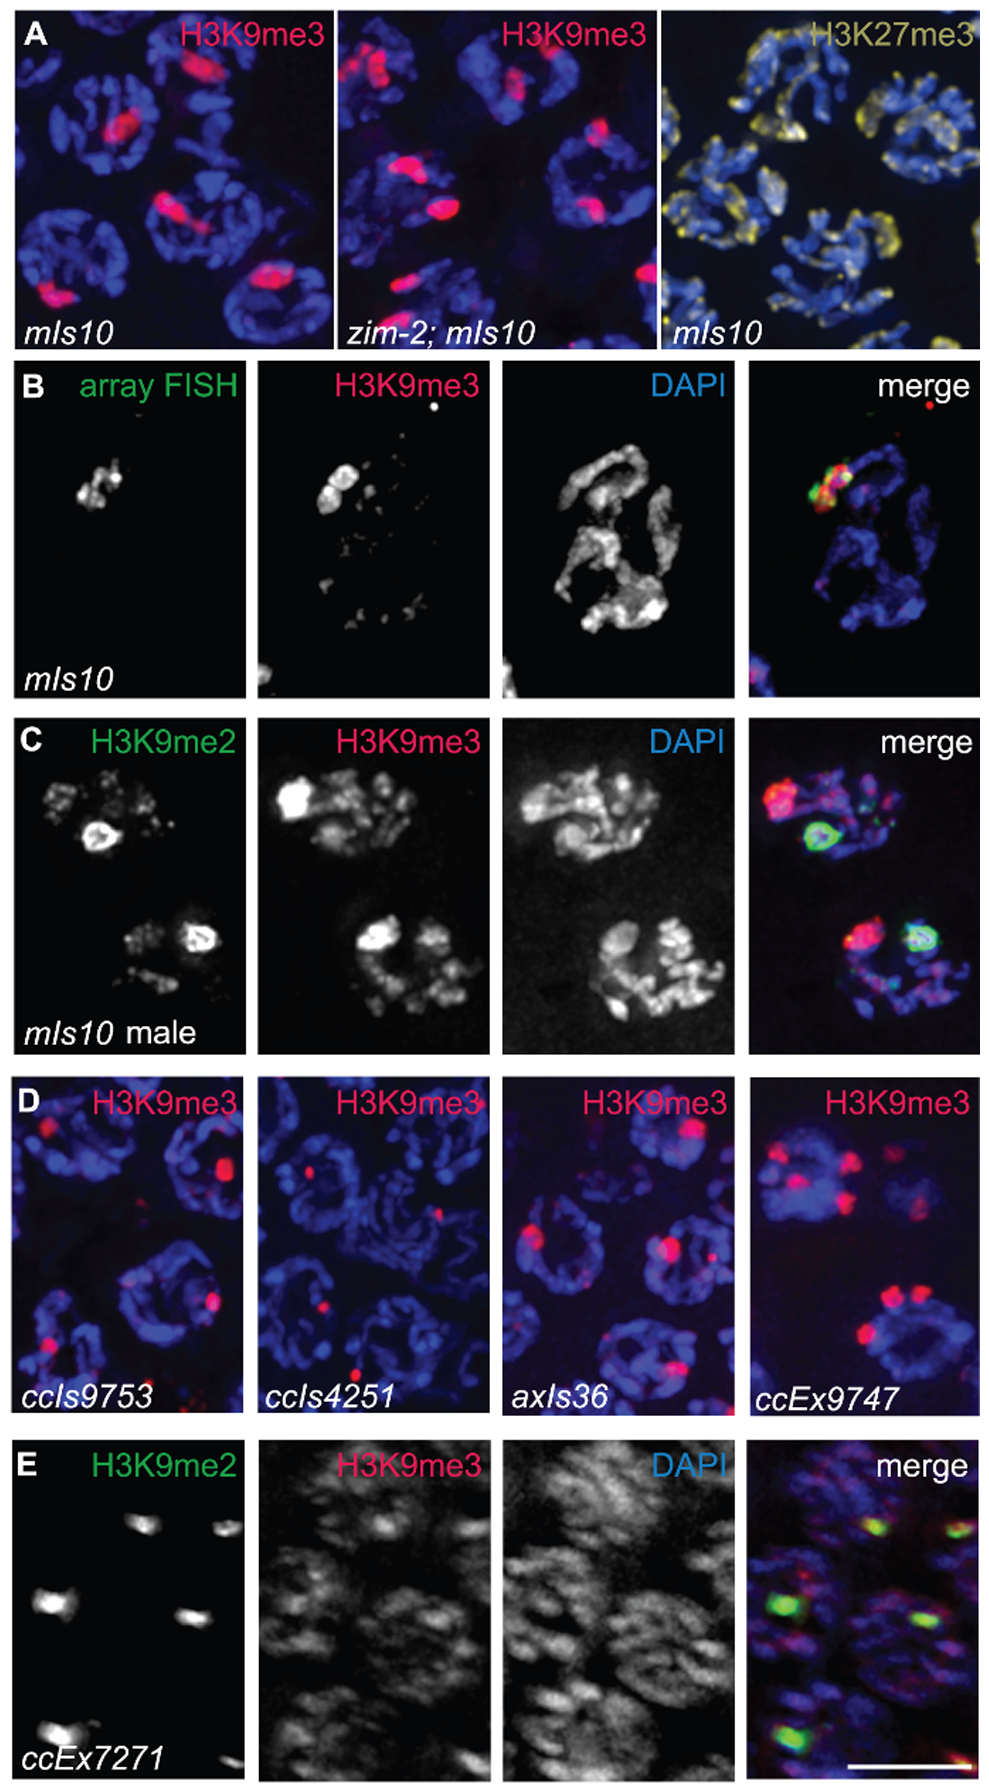 Arrays composed of transgenes with soma-specific promoters are enriched for H3K9me3.